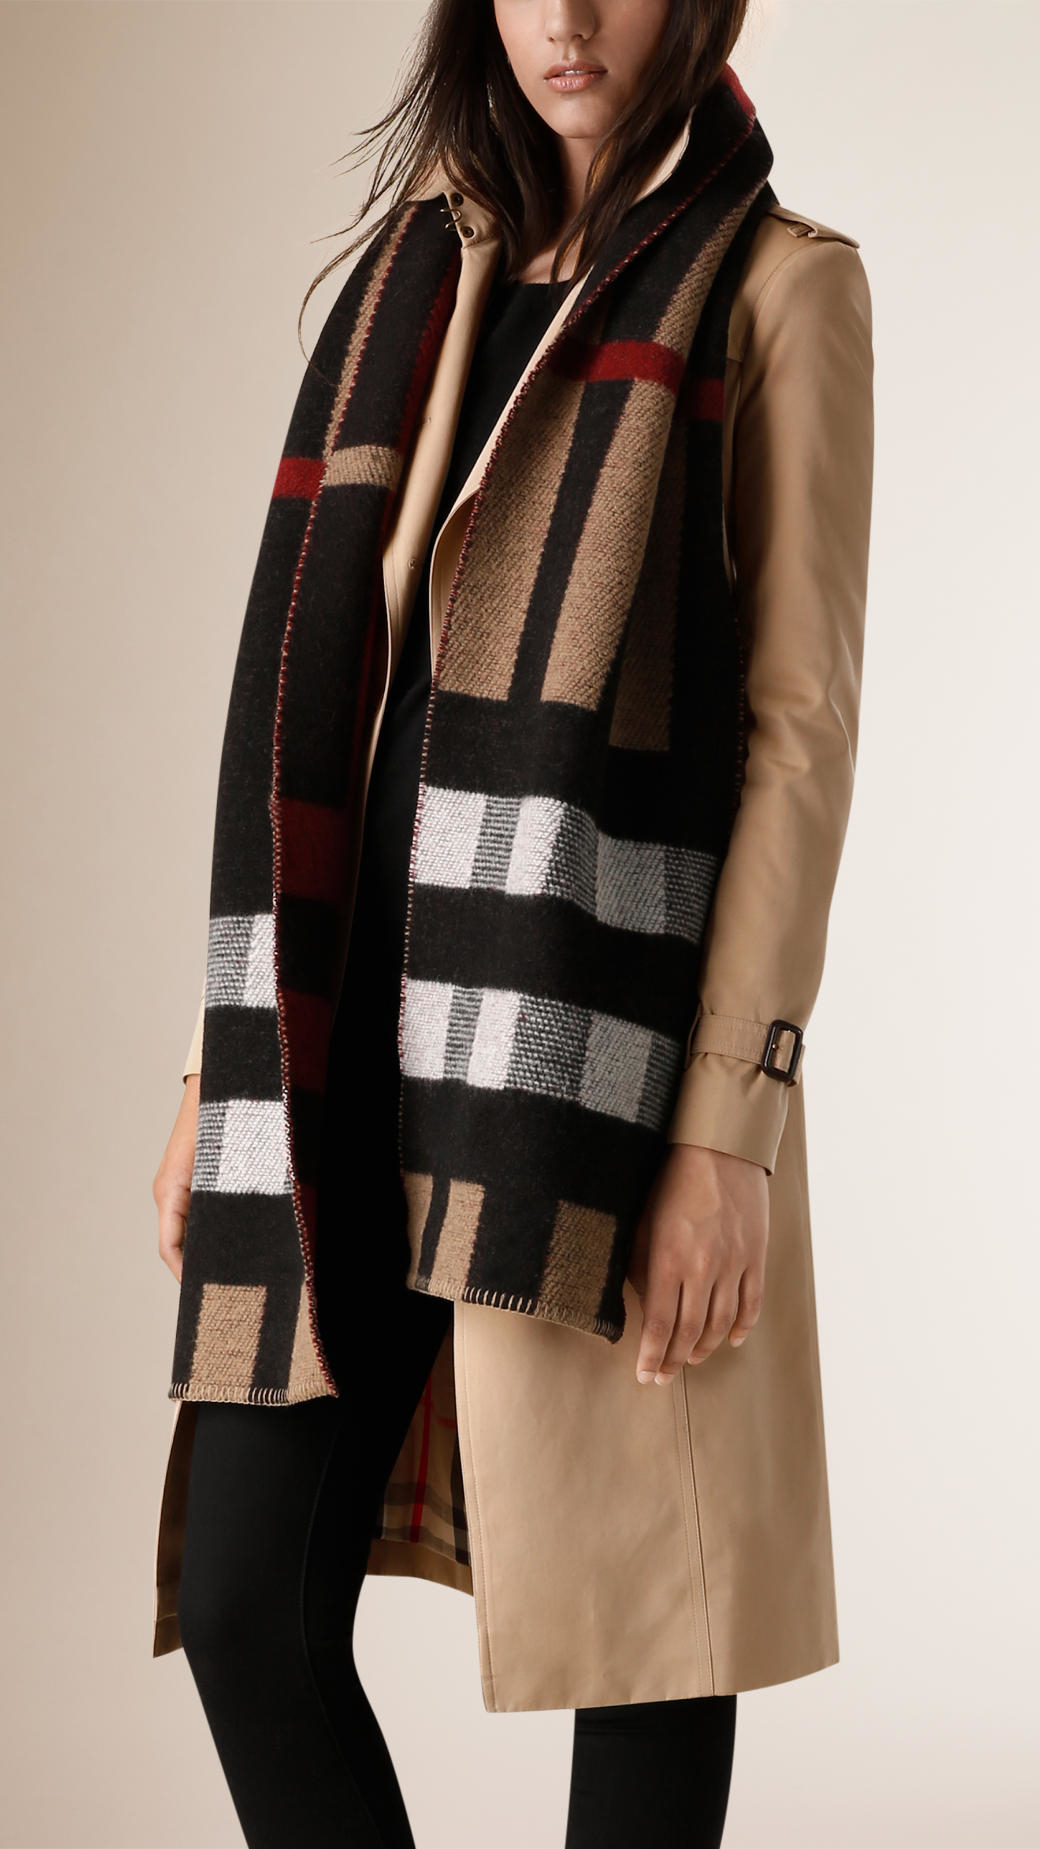 57d0a33fb79 Burberry Fringed Check Wool Cashmere Scarf